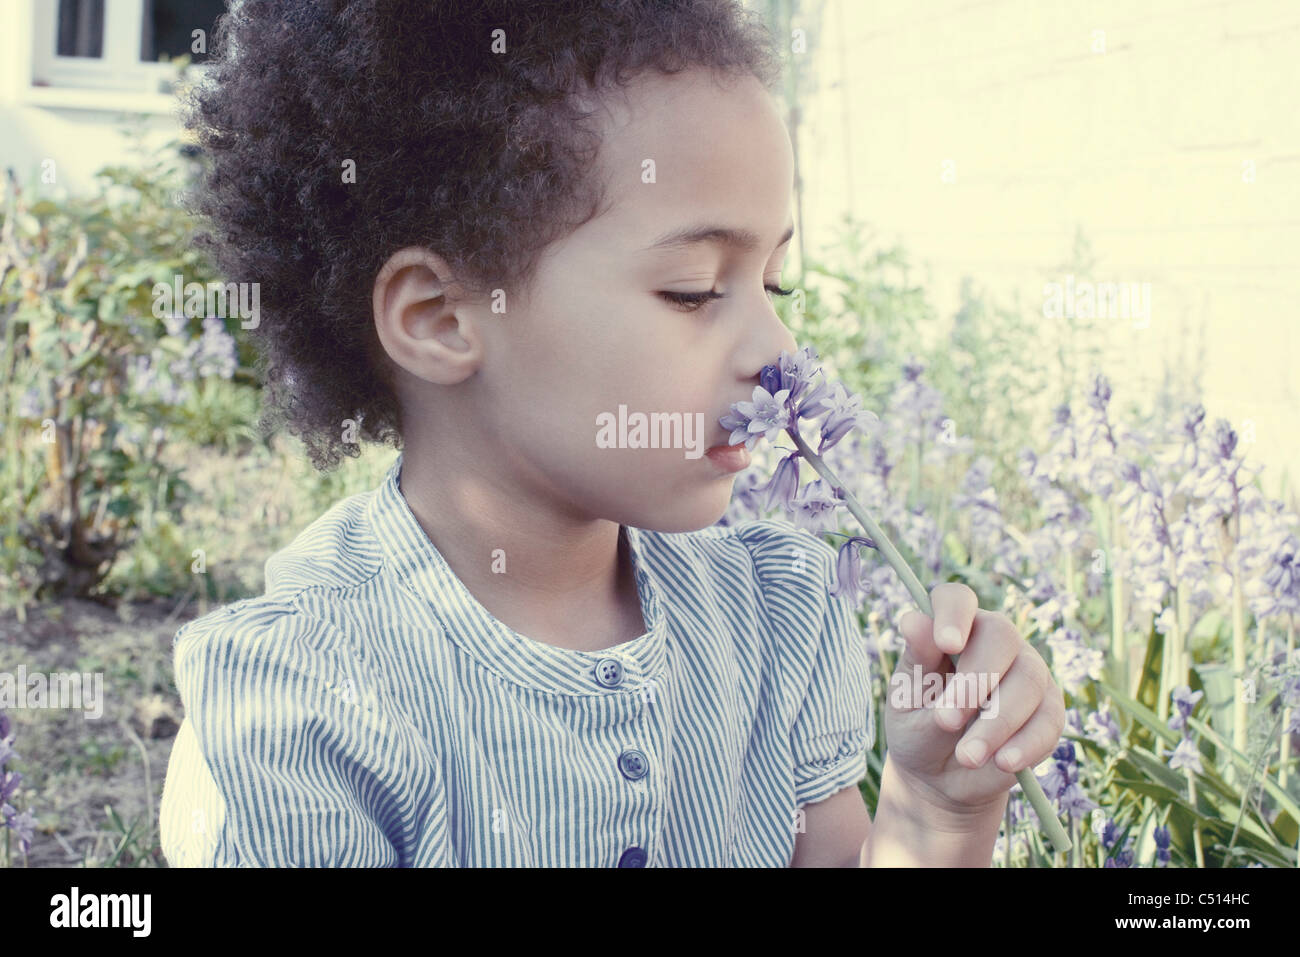 Little girl smelling purple flowers - Stock Image